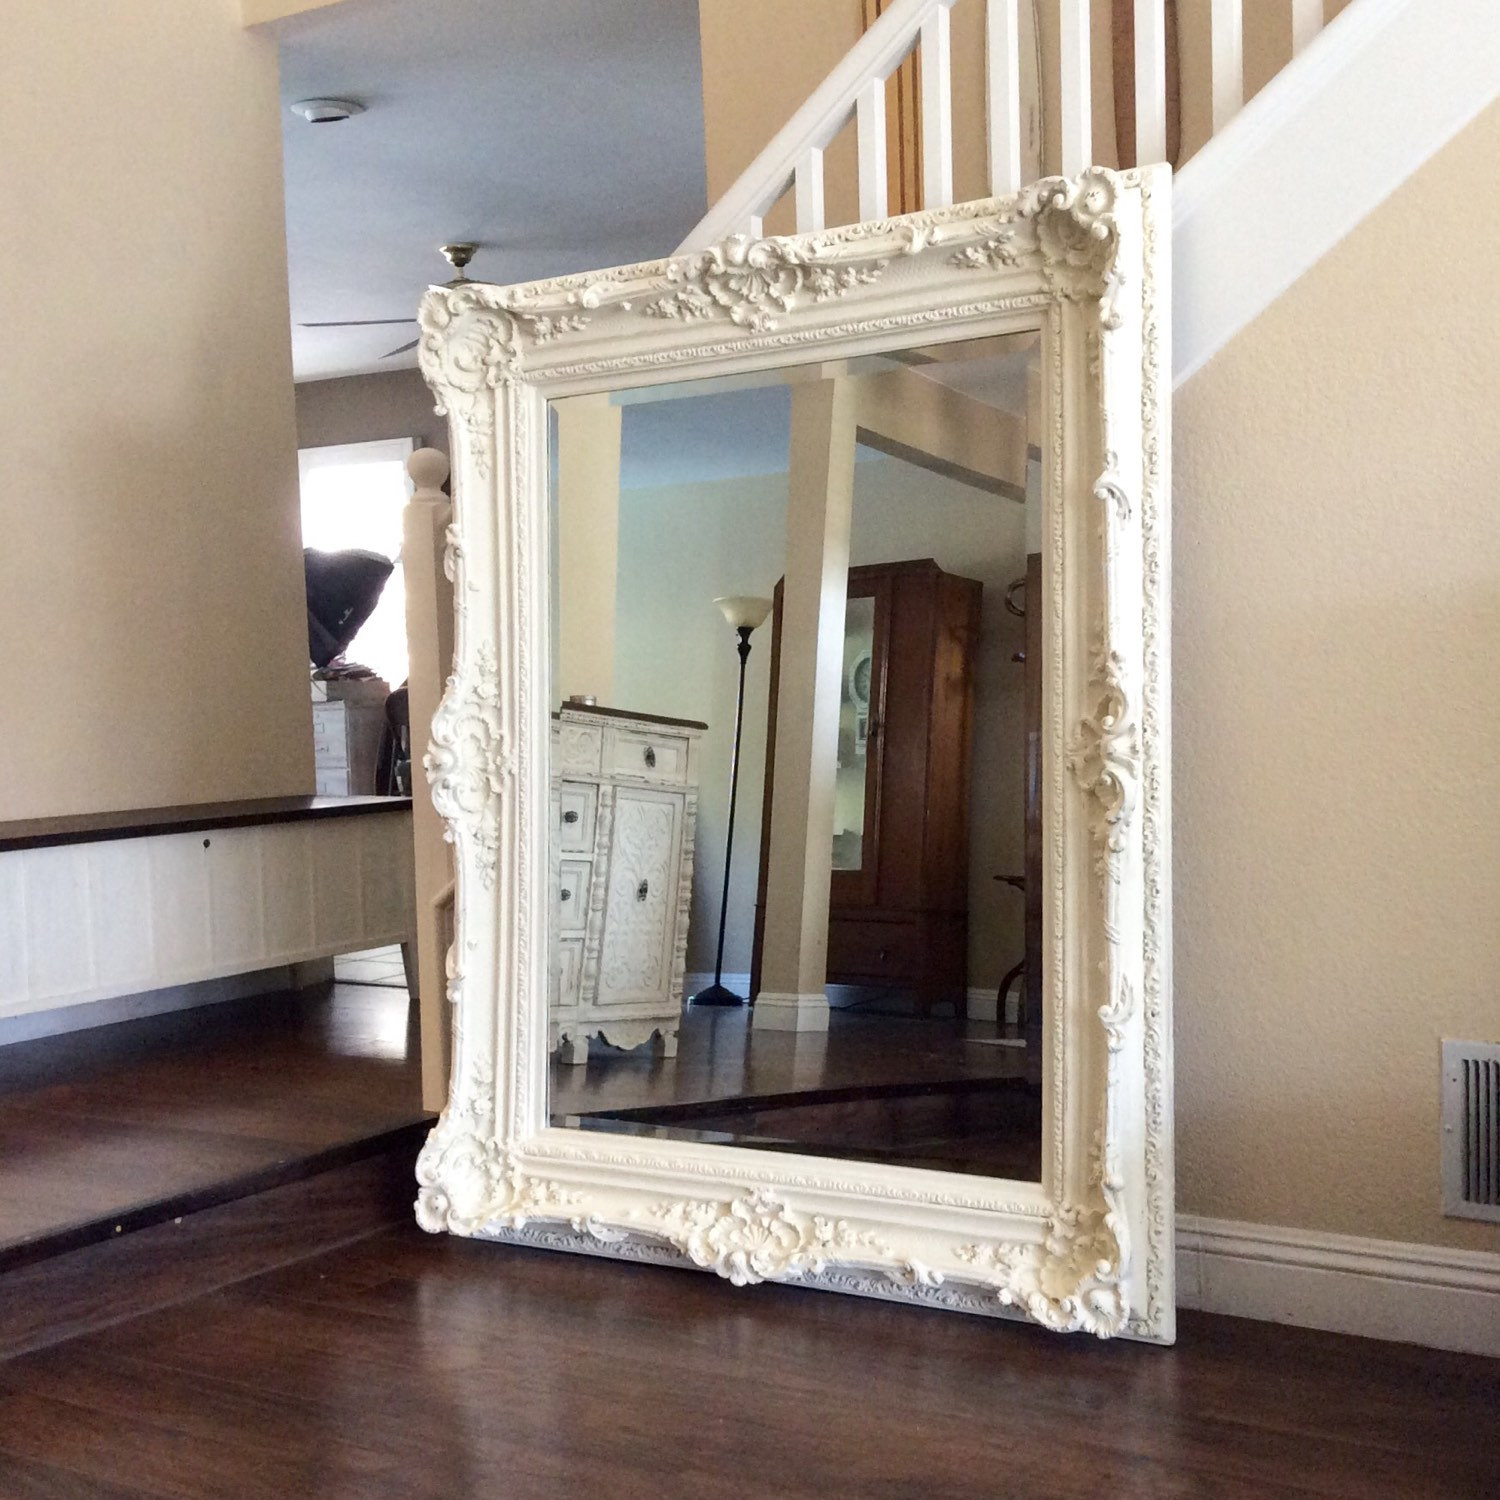 gorgeous ornate mirror for sale large white mirror shabby chic wall mirror nursery decor. Black Bedroom Furniture Sets. Home Design Ideas